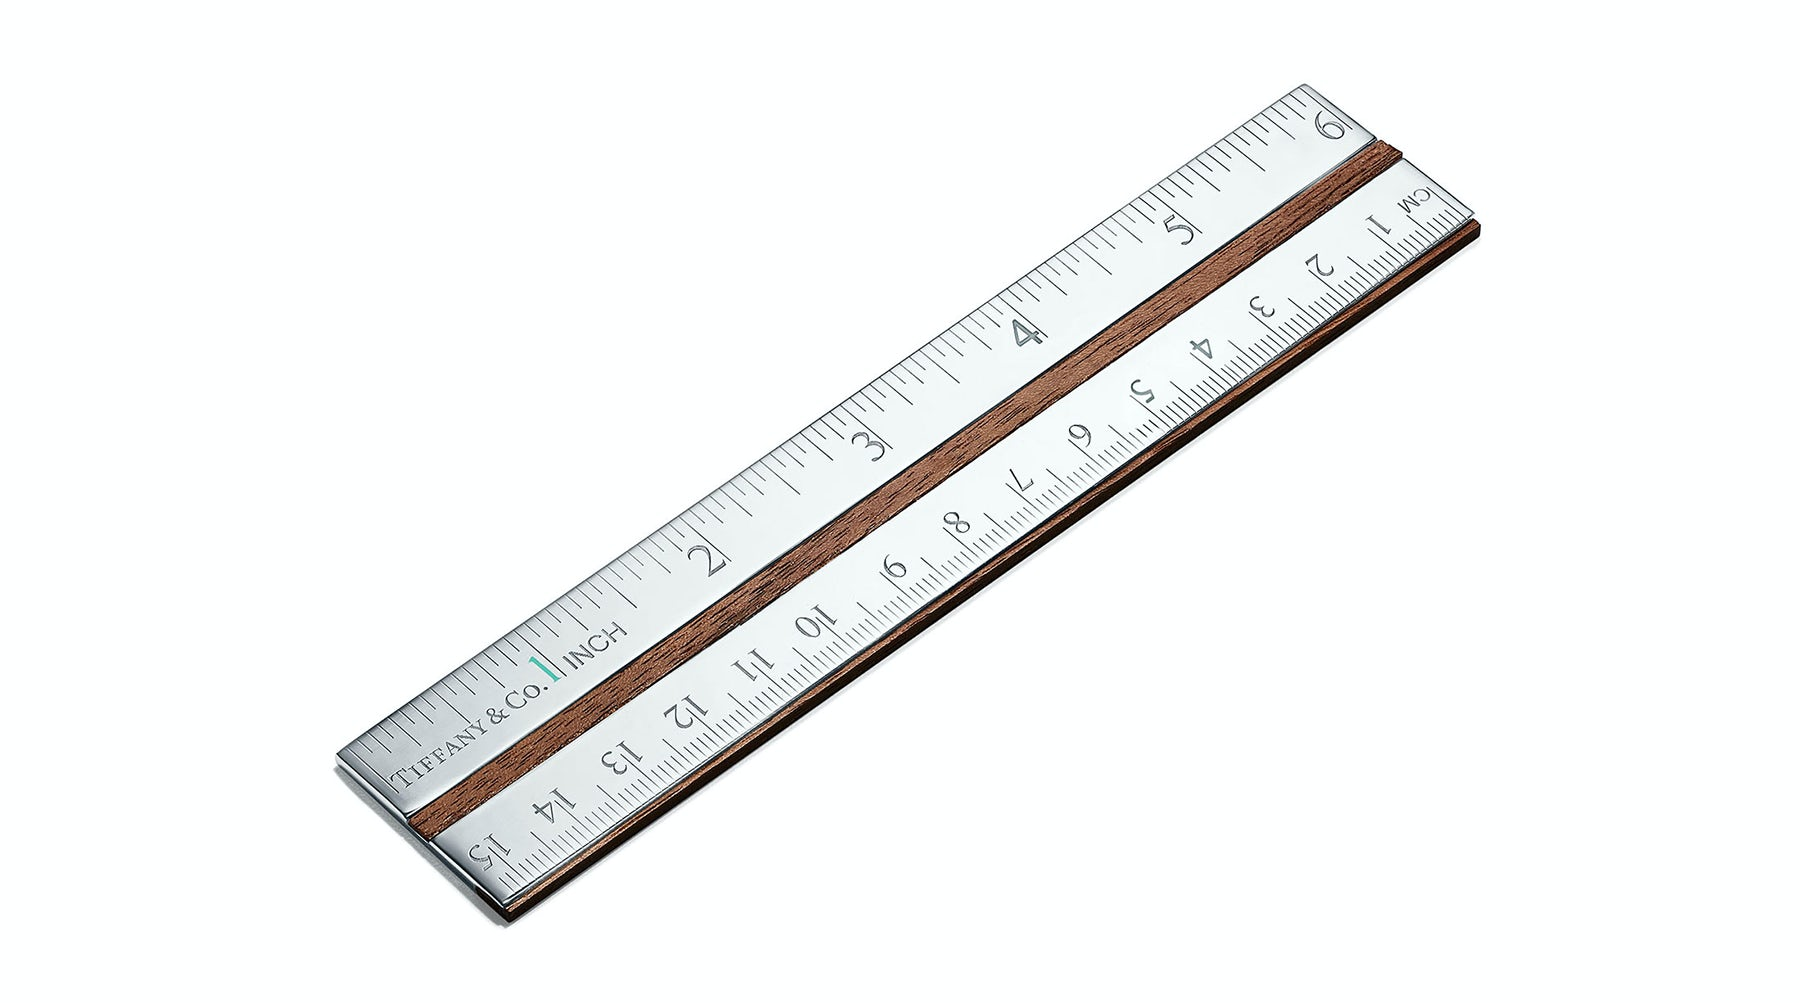 Tiffany & Co's ruler | Source: Courtesy